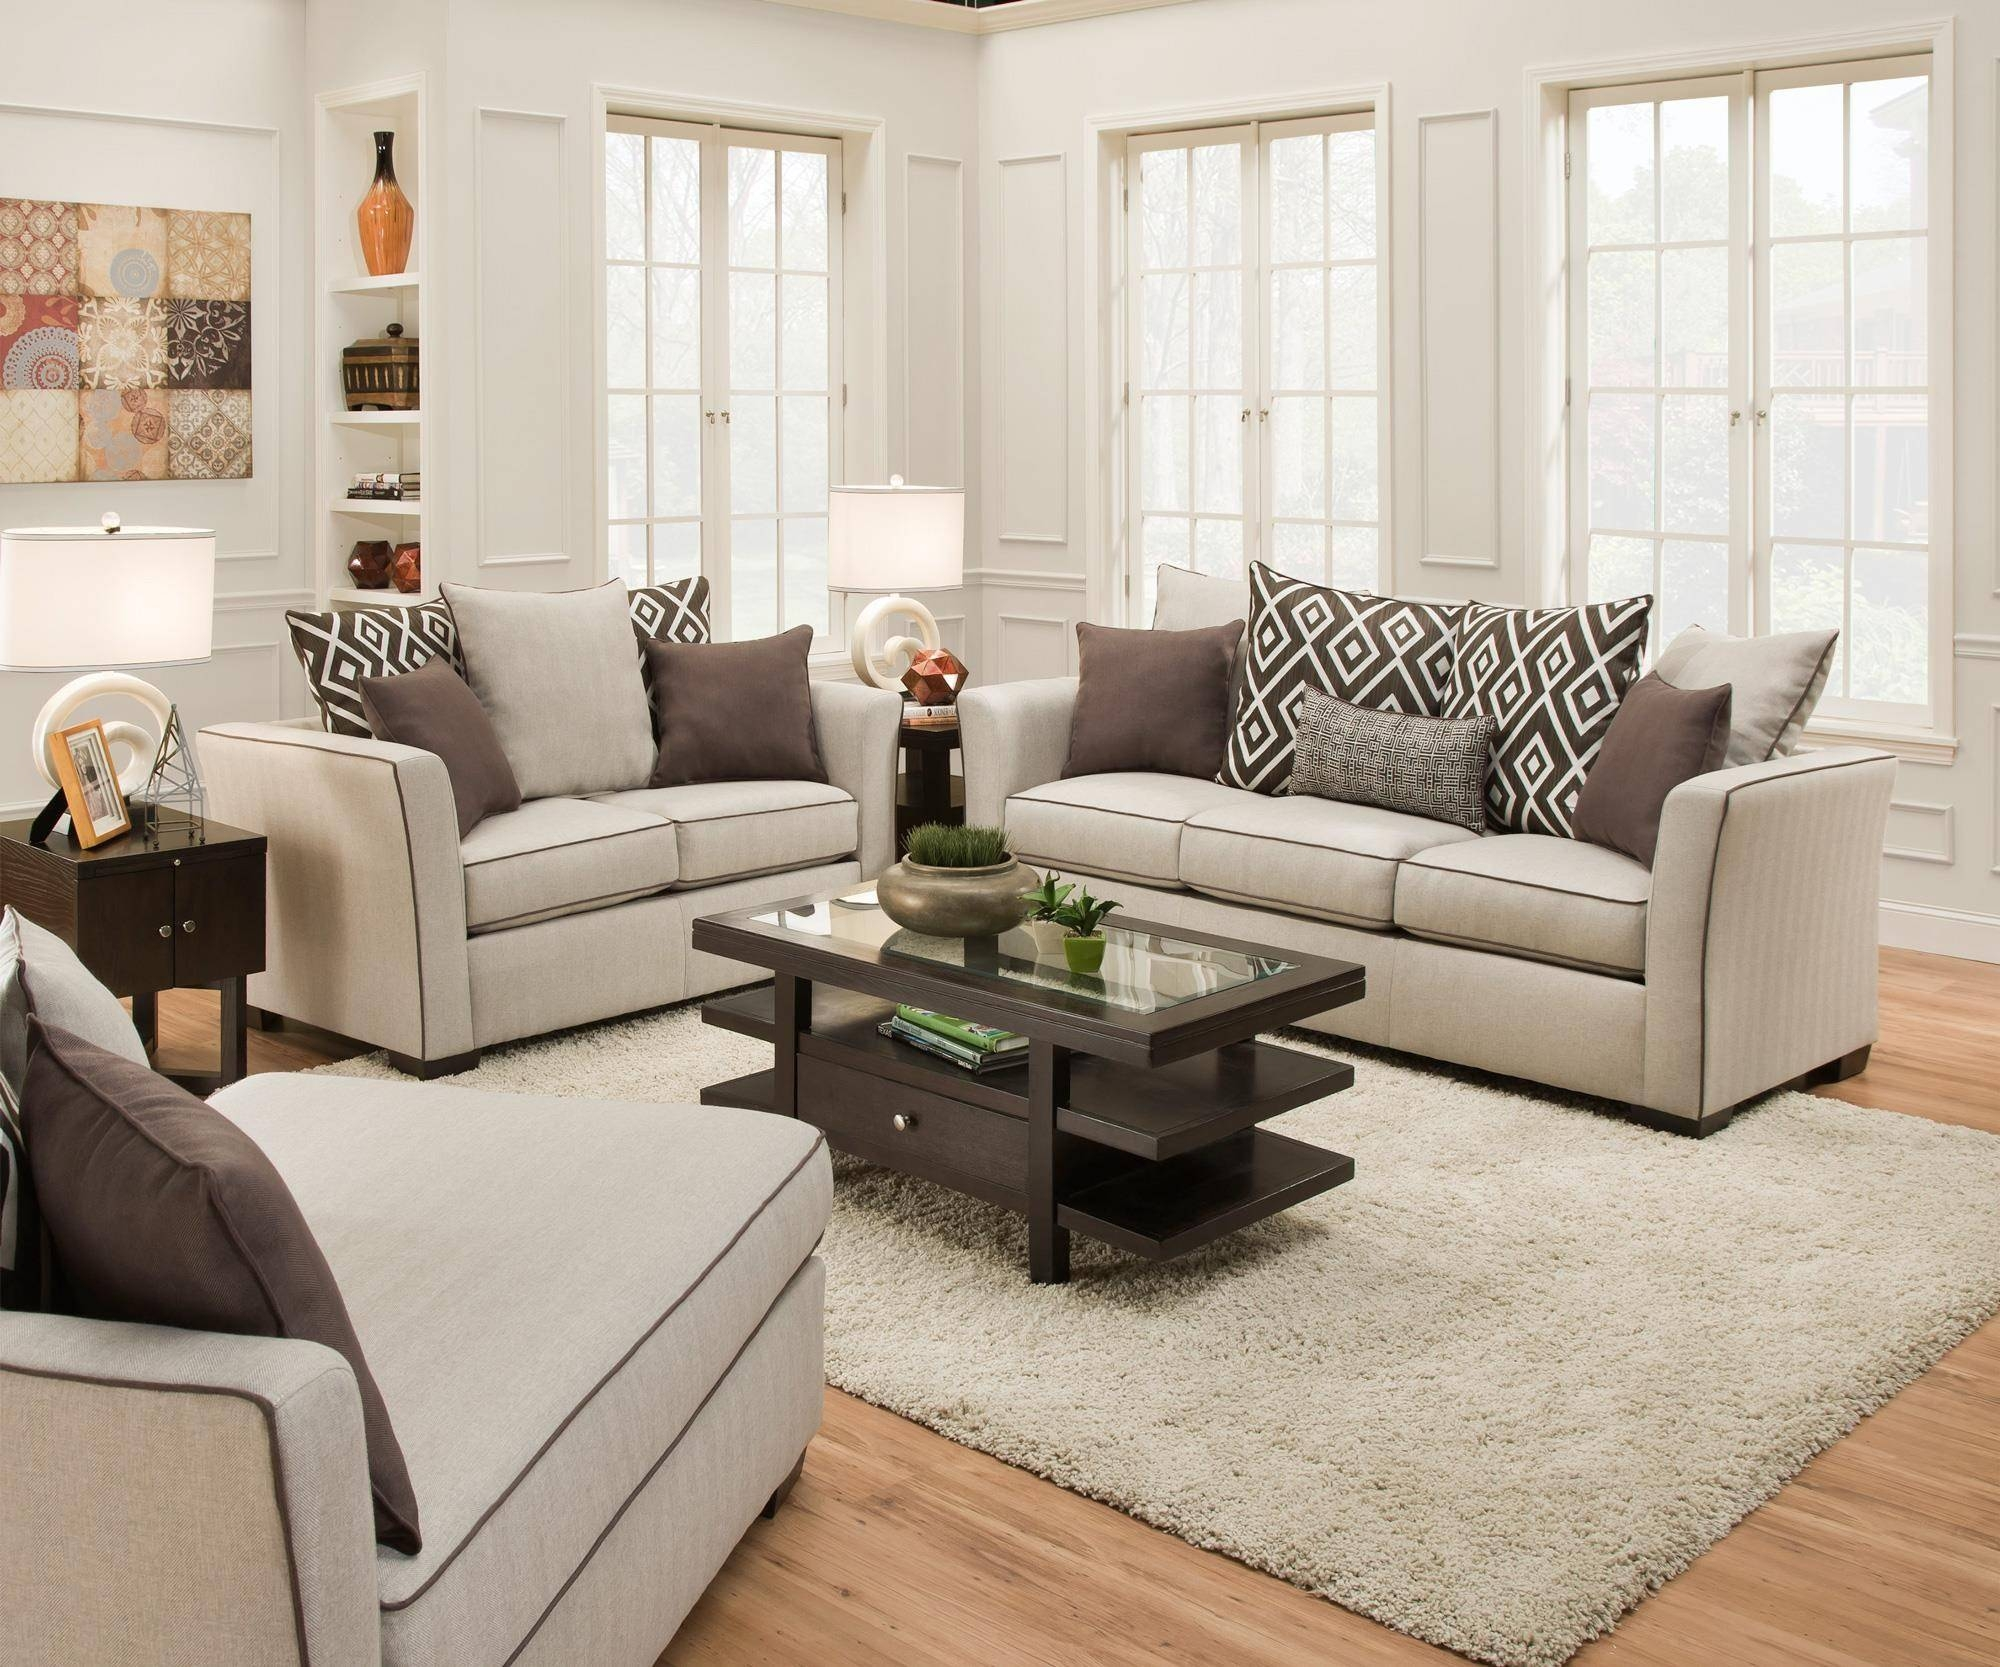 Furniture: Simmons Upholstery For Comfortable Seating — Emdca intended for Simmons Microfiber Sofas (Image 13 of 15)